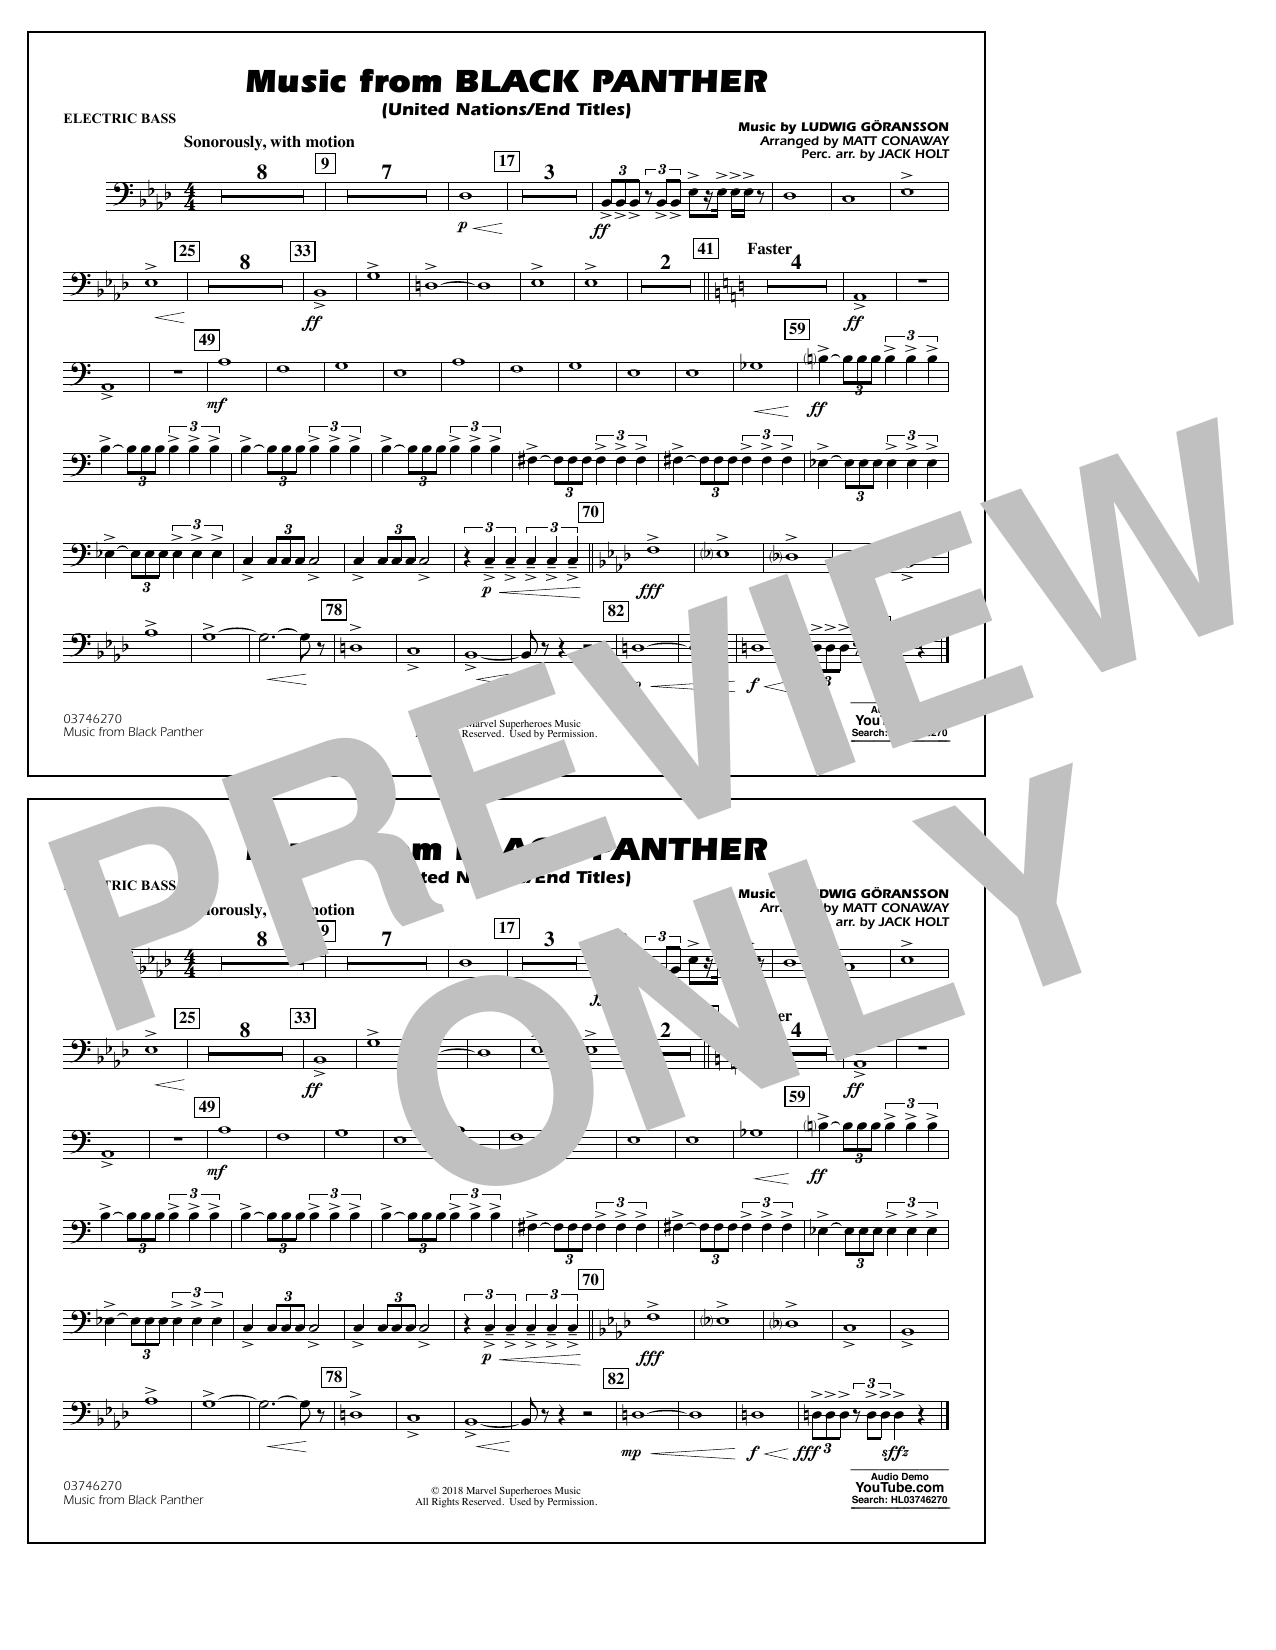 Music from Black Panther (arr. Matt Conaway) - Electric Bass (Marching Band)